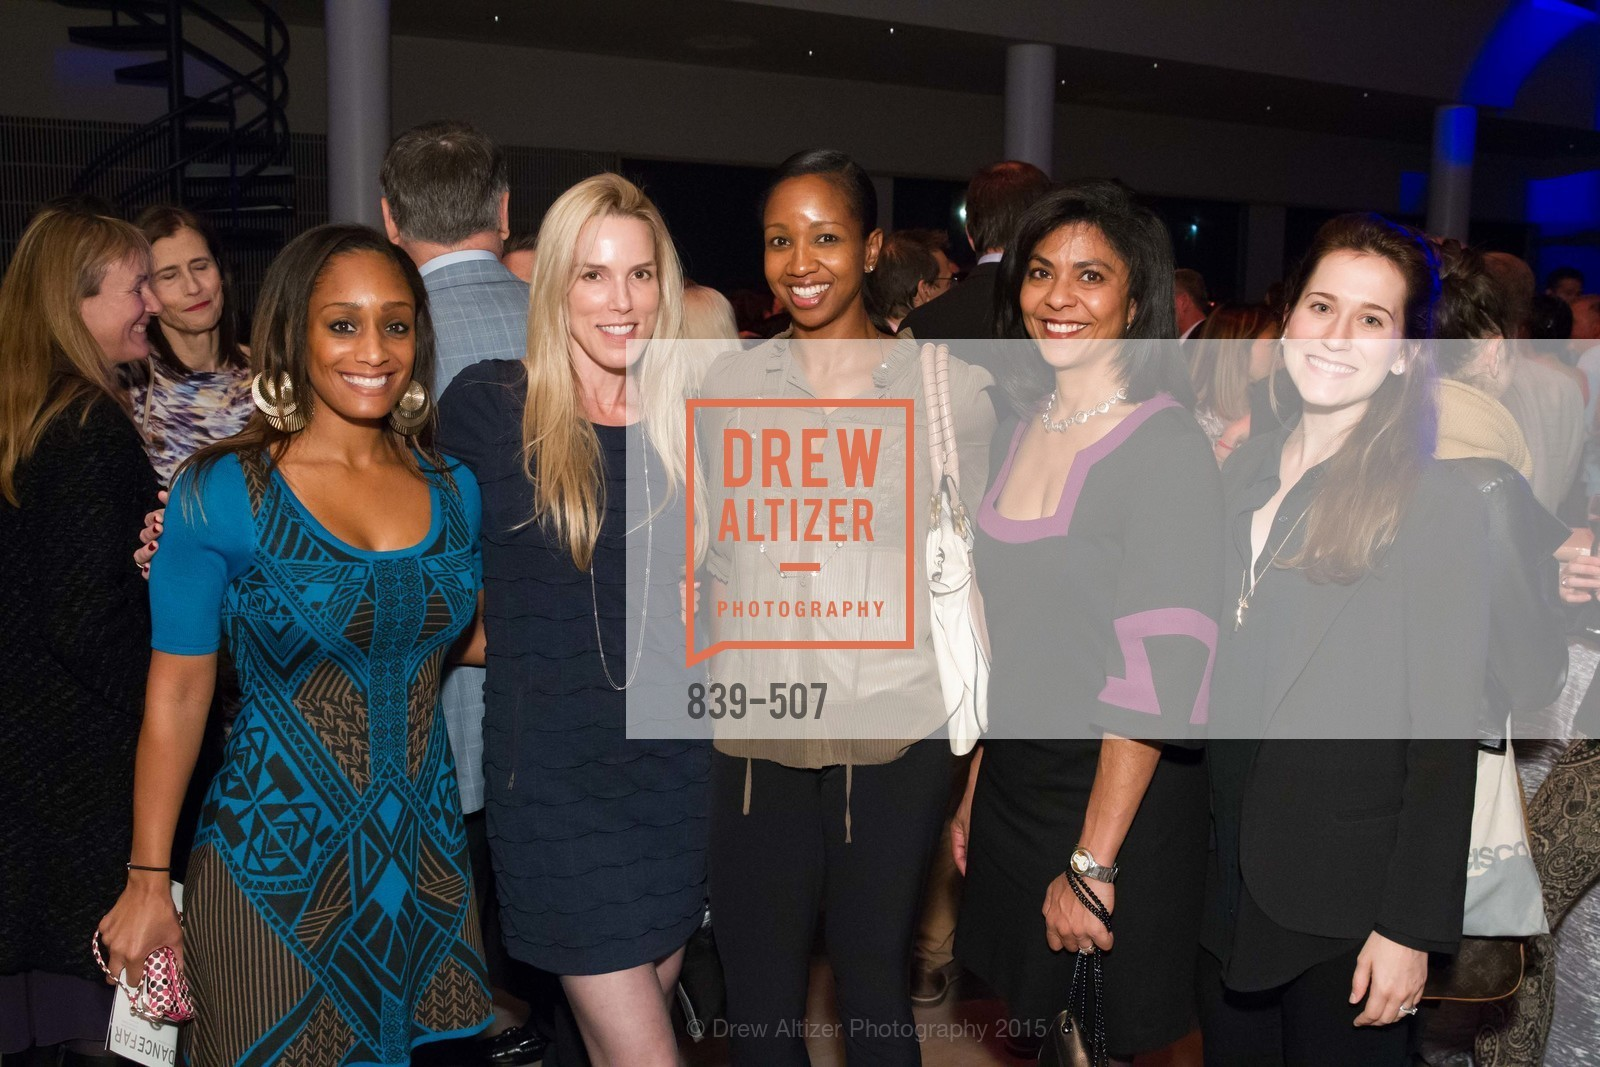 Sabrina Porter, Sharon Demko, Keisha Ramey Pressner, Niquette Hunt, Lauren Giomini, Cancer Prevention Institute of California Presents DanceFAR, YBCA Theatre and Forum. 701 Mission Street, November 10th, 2015